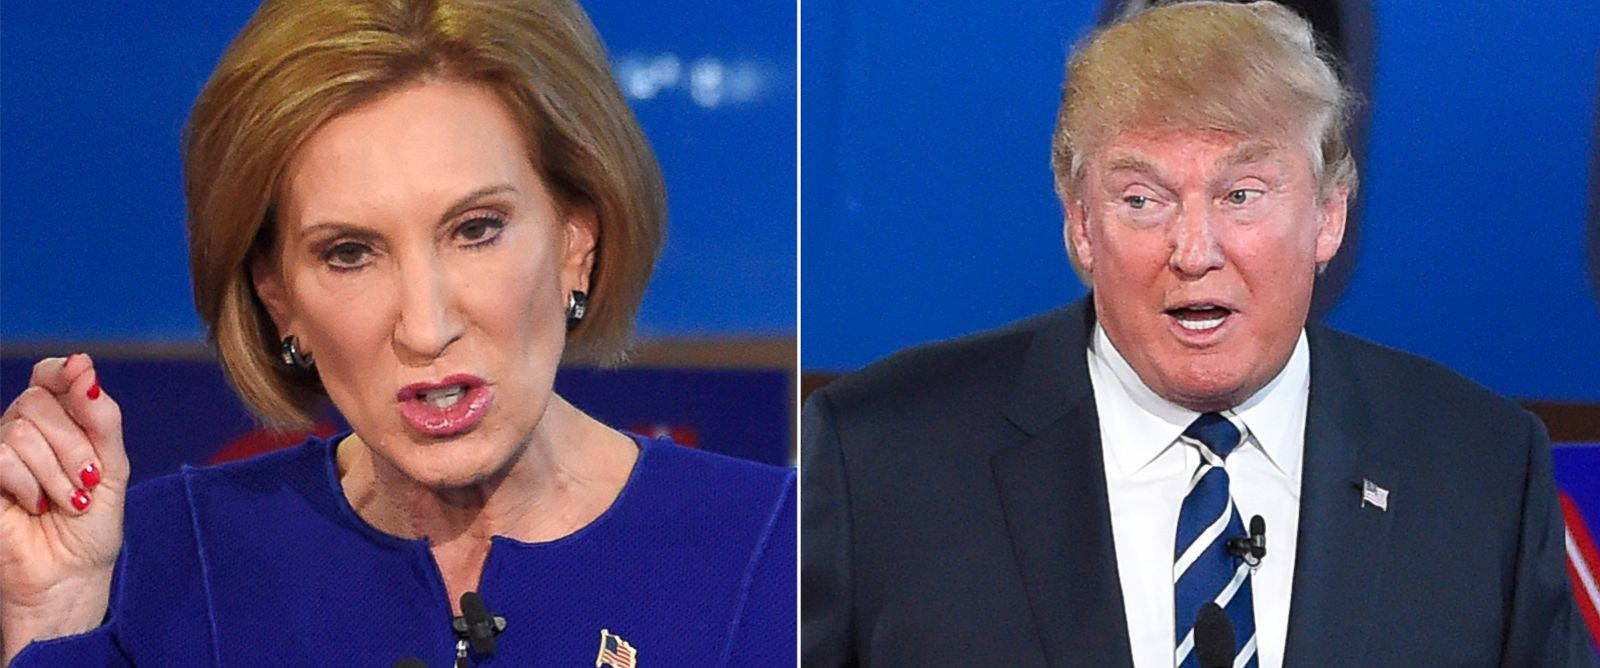 PHOTO: Carly Fiorina and Donald Trump during the CNN Republican presidential debate on Sept. 16, 2015, in Simi Valley, Calif.